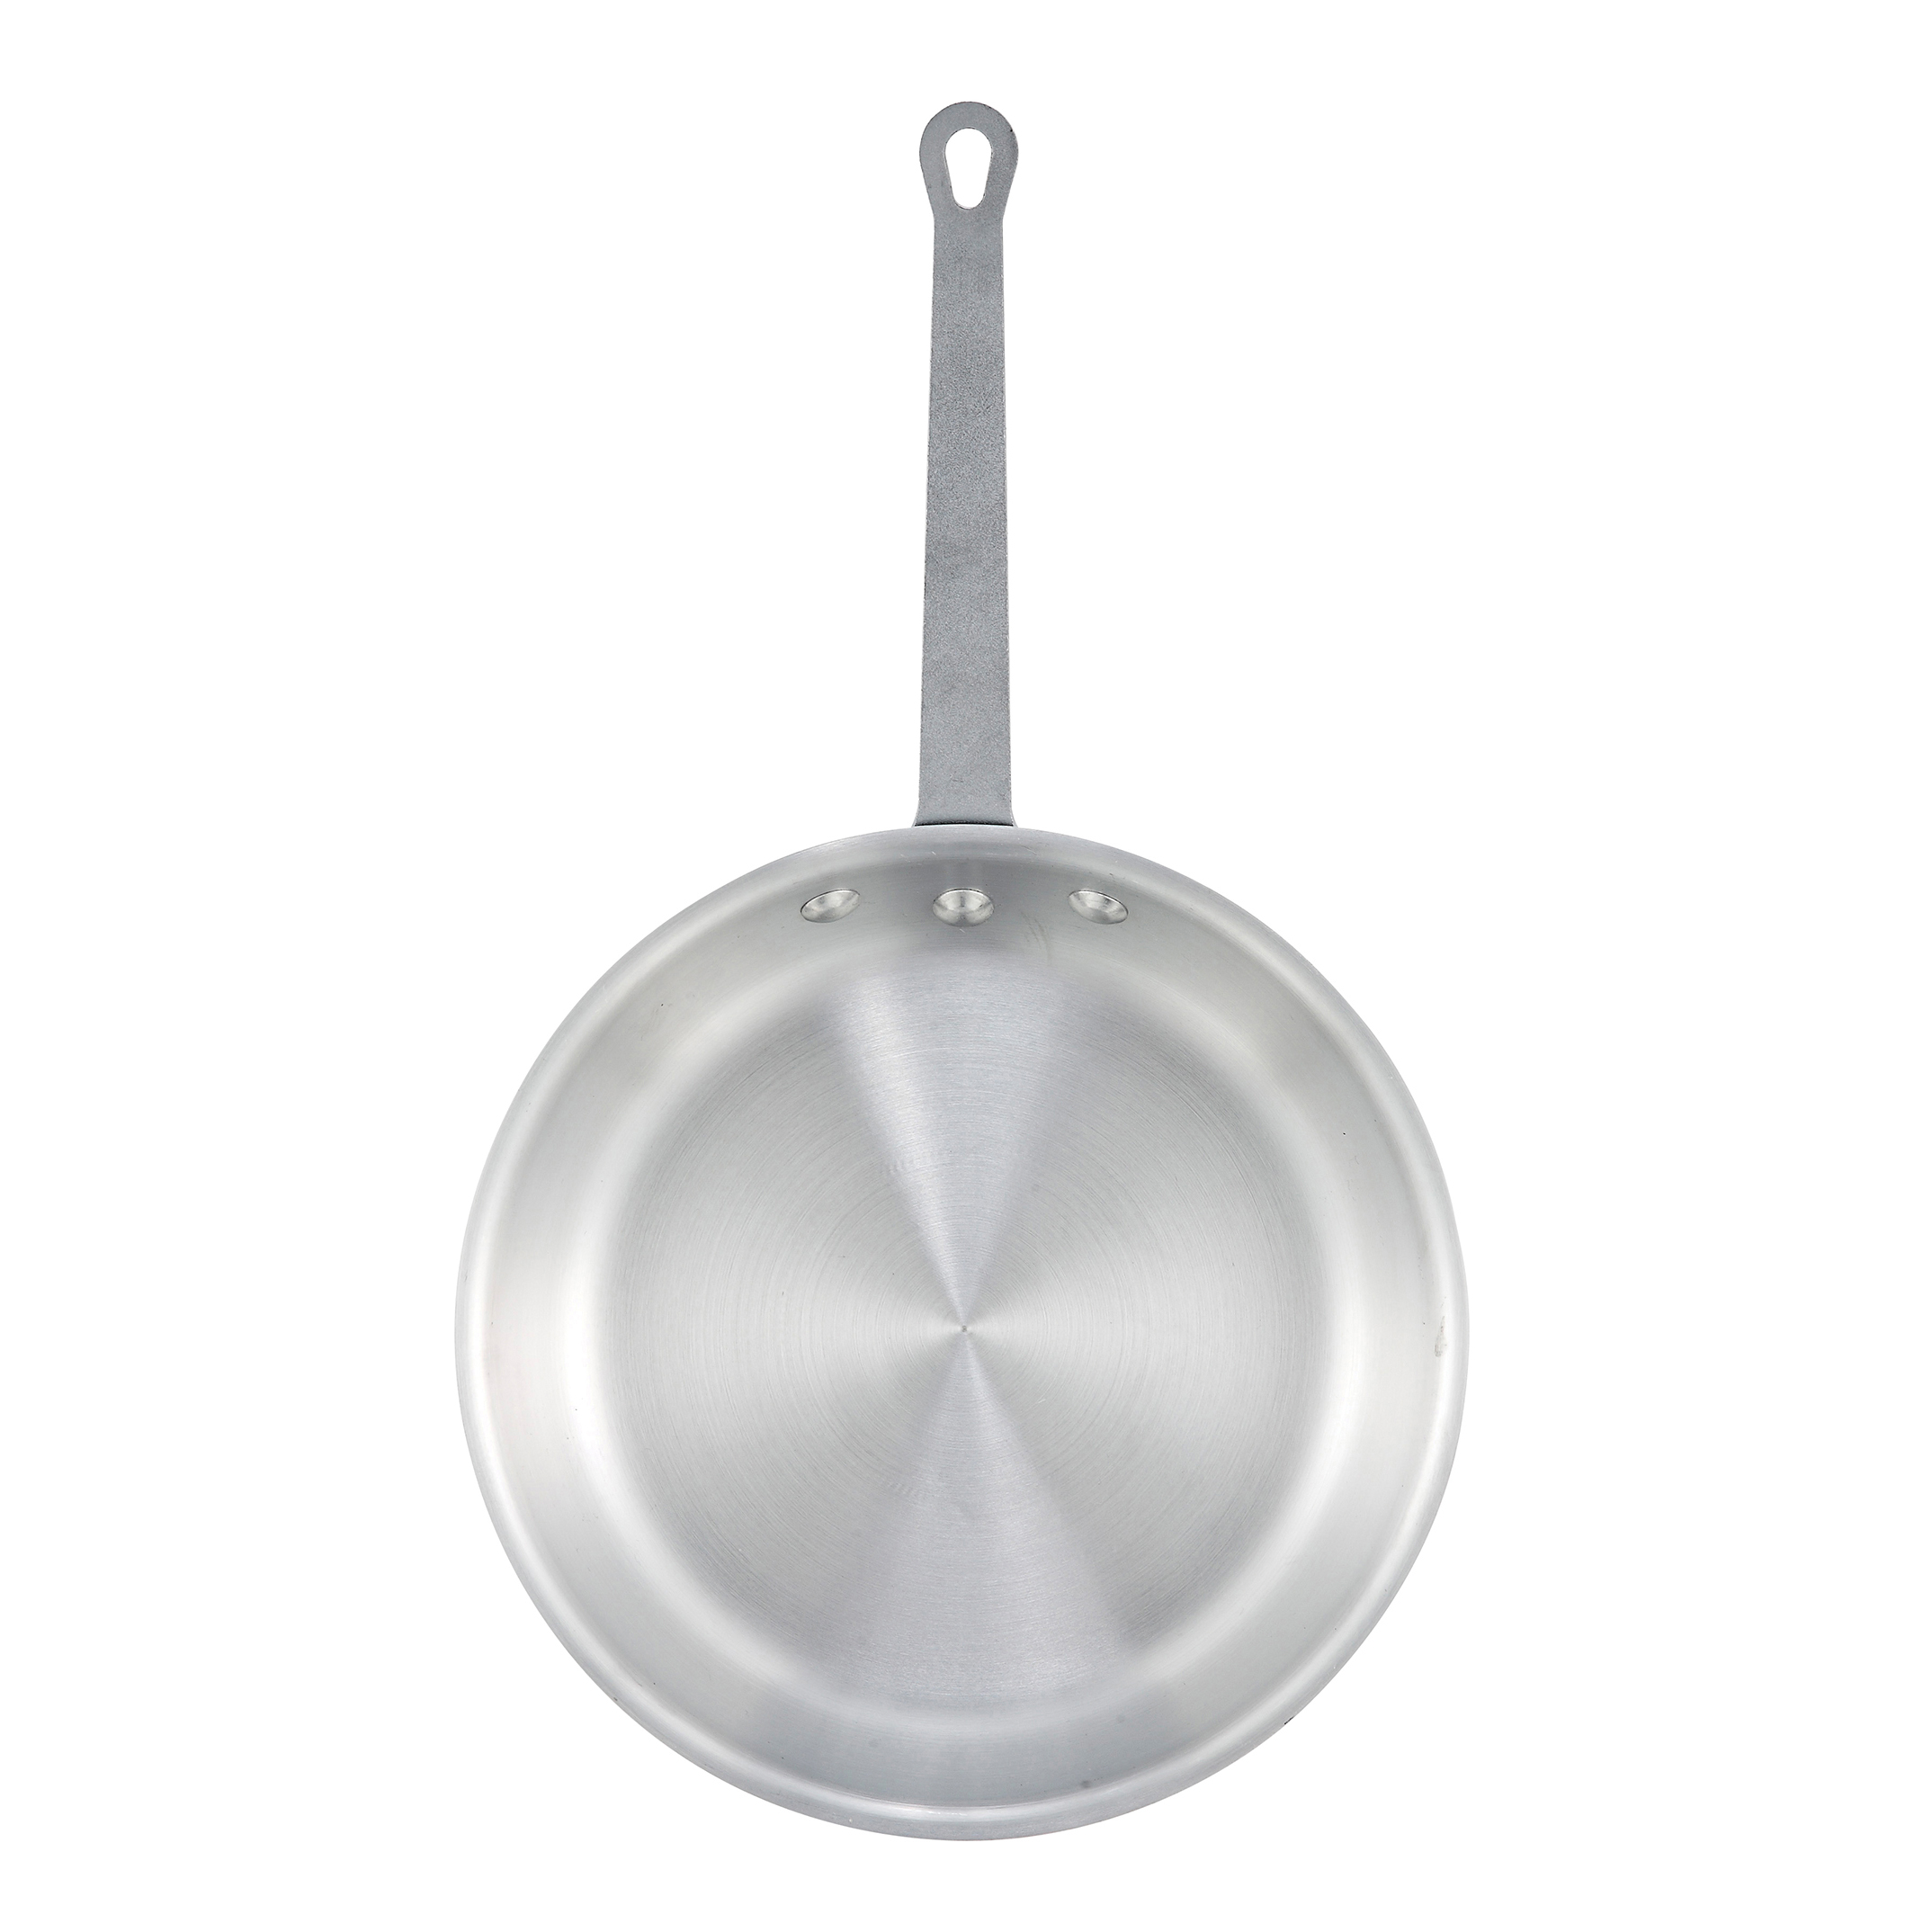 Winco AFP-10A fry pan